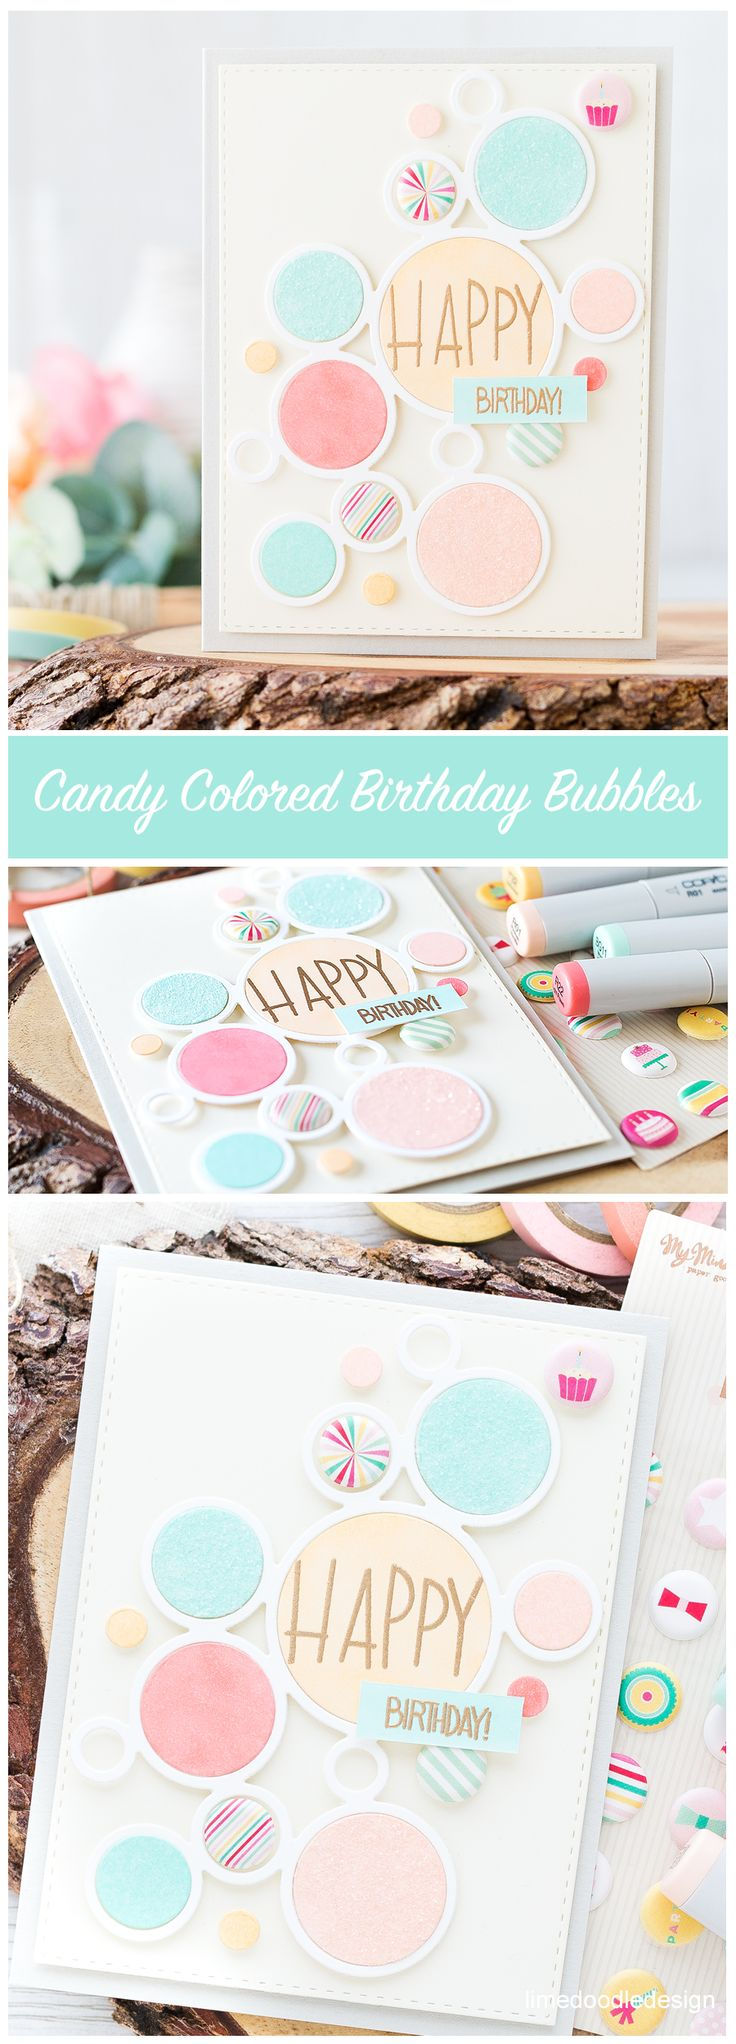 Candy Colored Birthday Bubbles Card. Find out more by clicking on the following link: http://limedoodledesign.com/2016/08/candy-colored-birthday-bubbles/